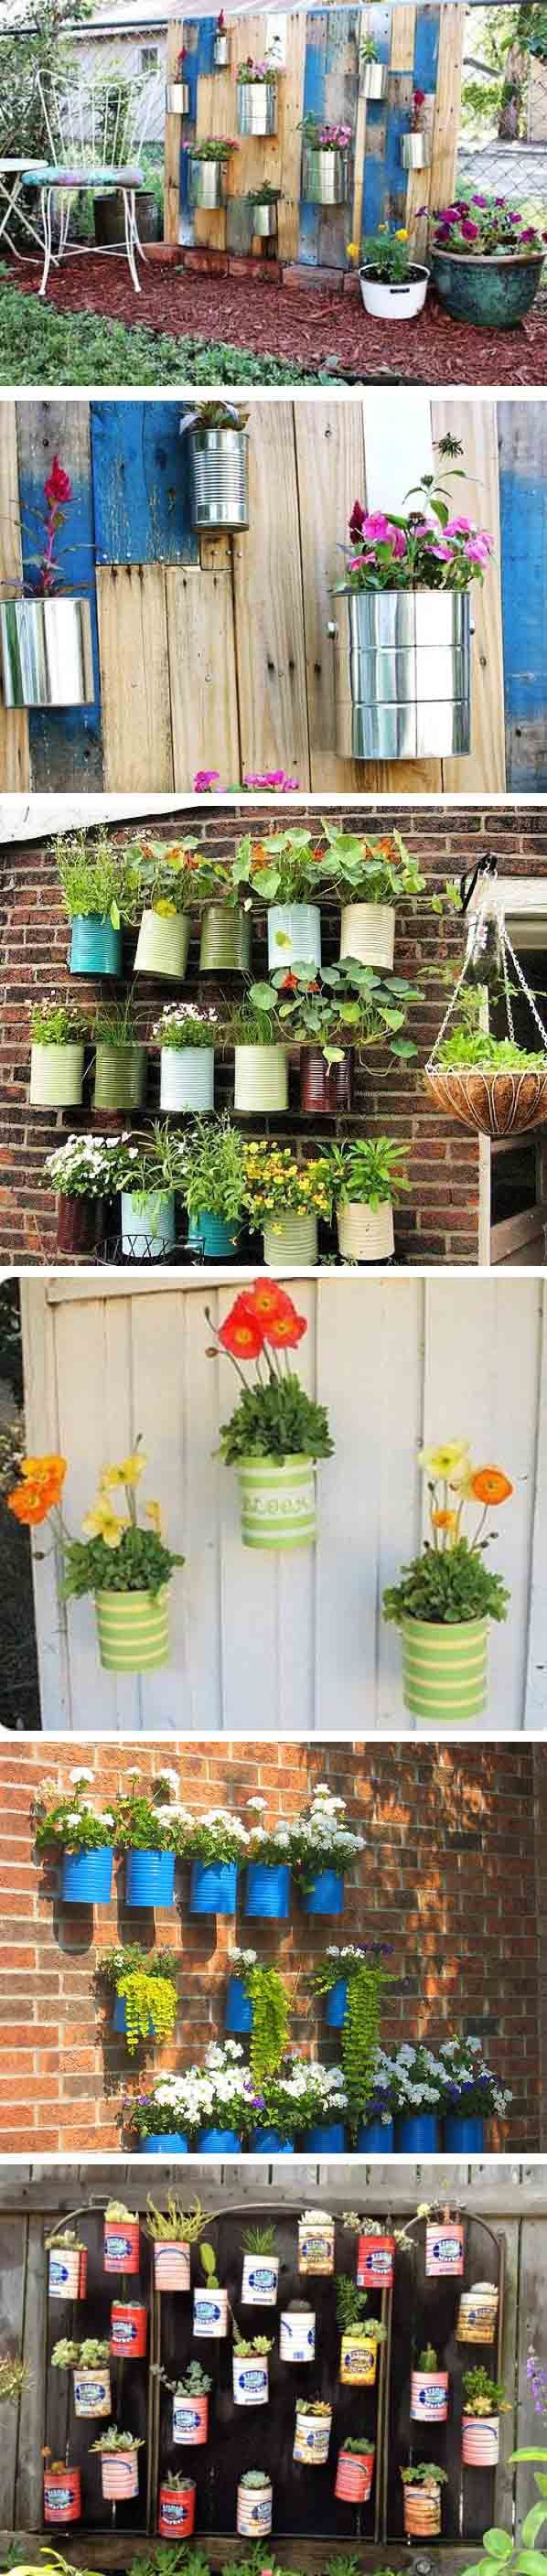 Jardines colgantes con latas metálicas  Allotment shed - idea, anyone wanting inspiration?